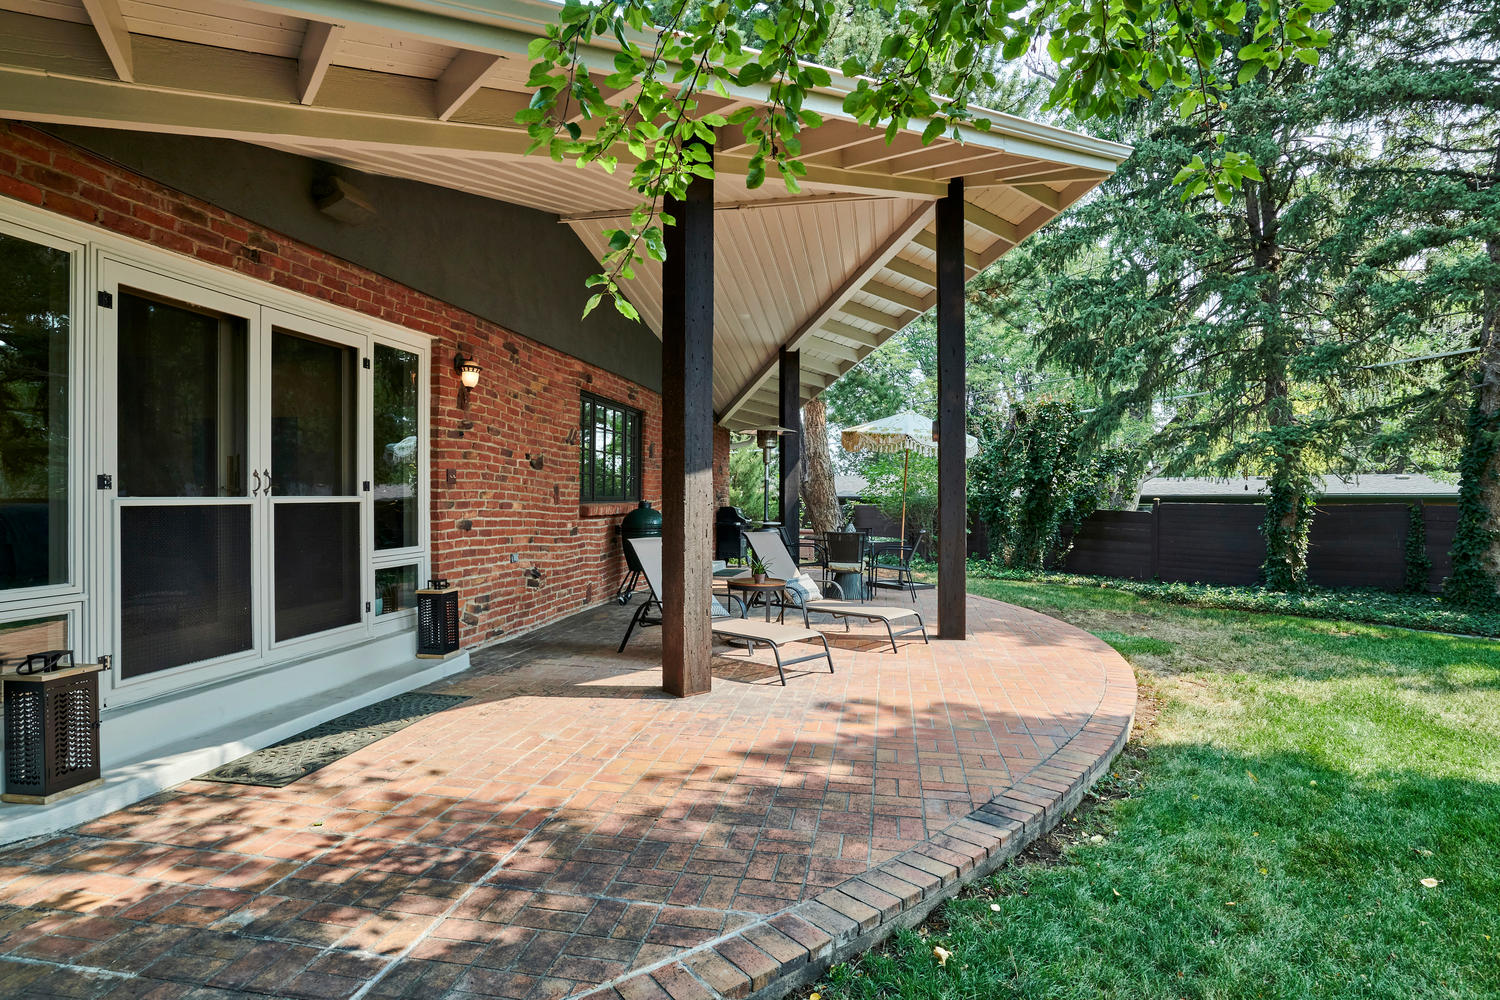 Privacy Abounds at Brick Paver Patio